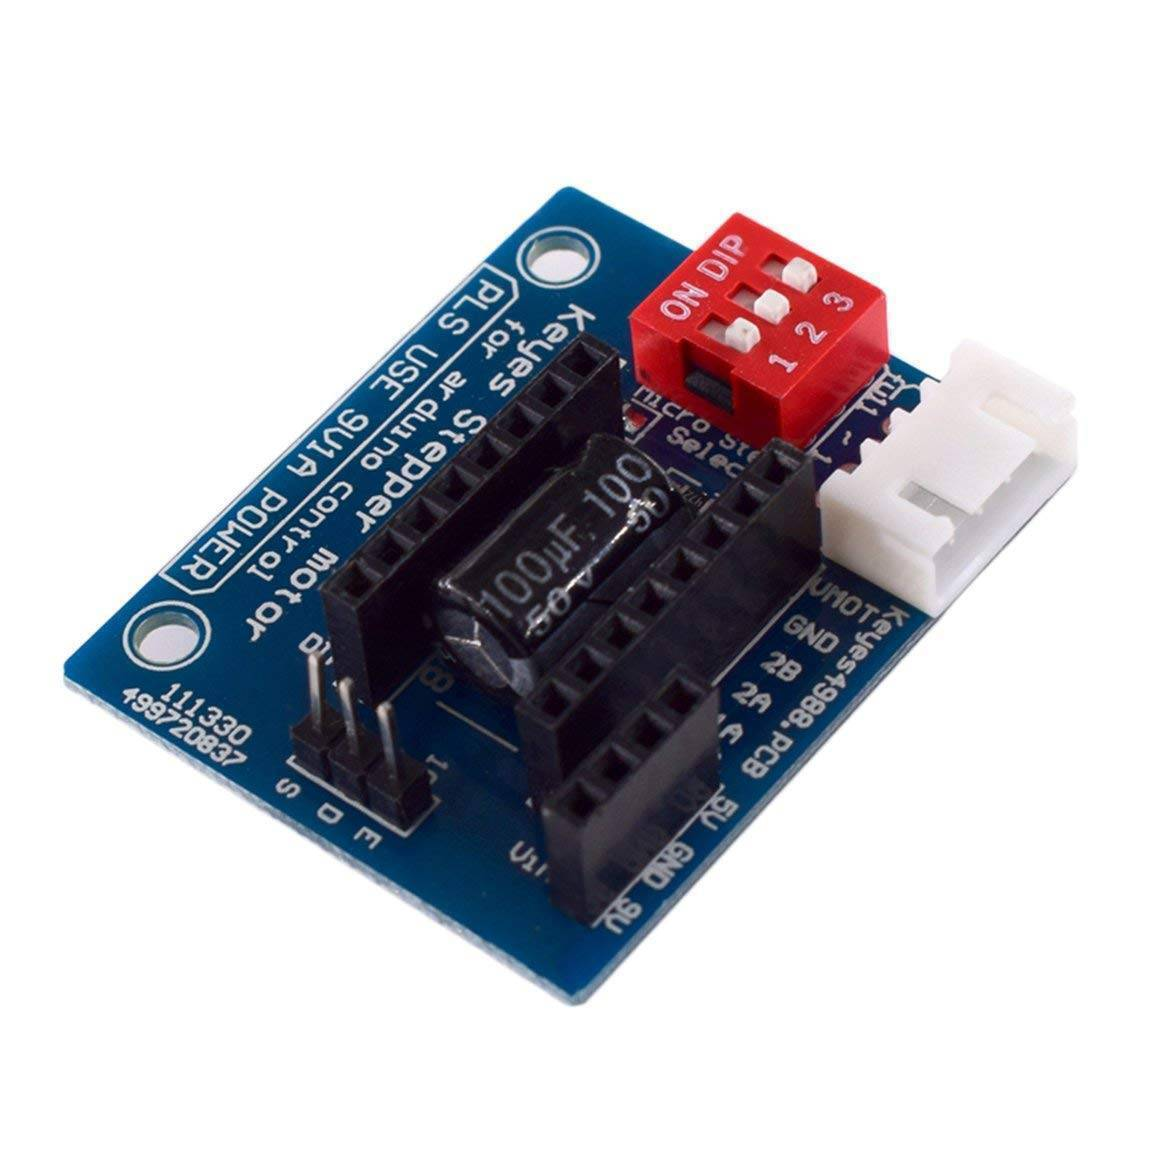 HW-434 A4988 DRV8825 Stepper Motor Driver Control Panel Board Expansion Shield Board Module for 3D Printer in Pakistan